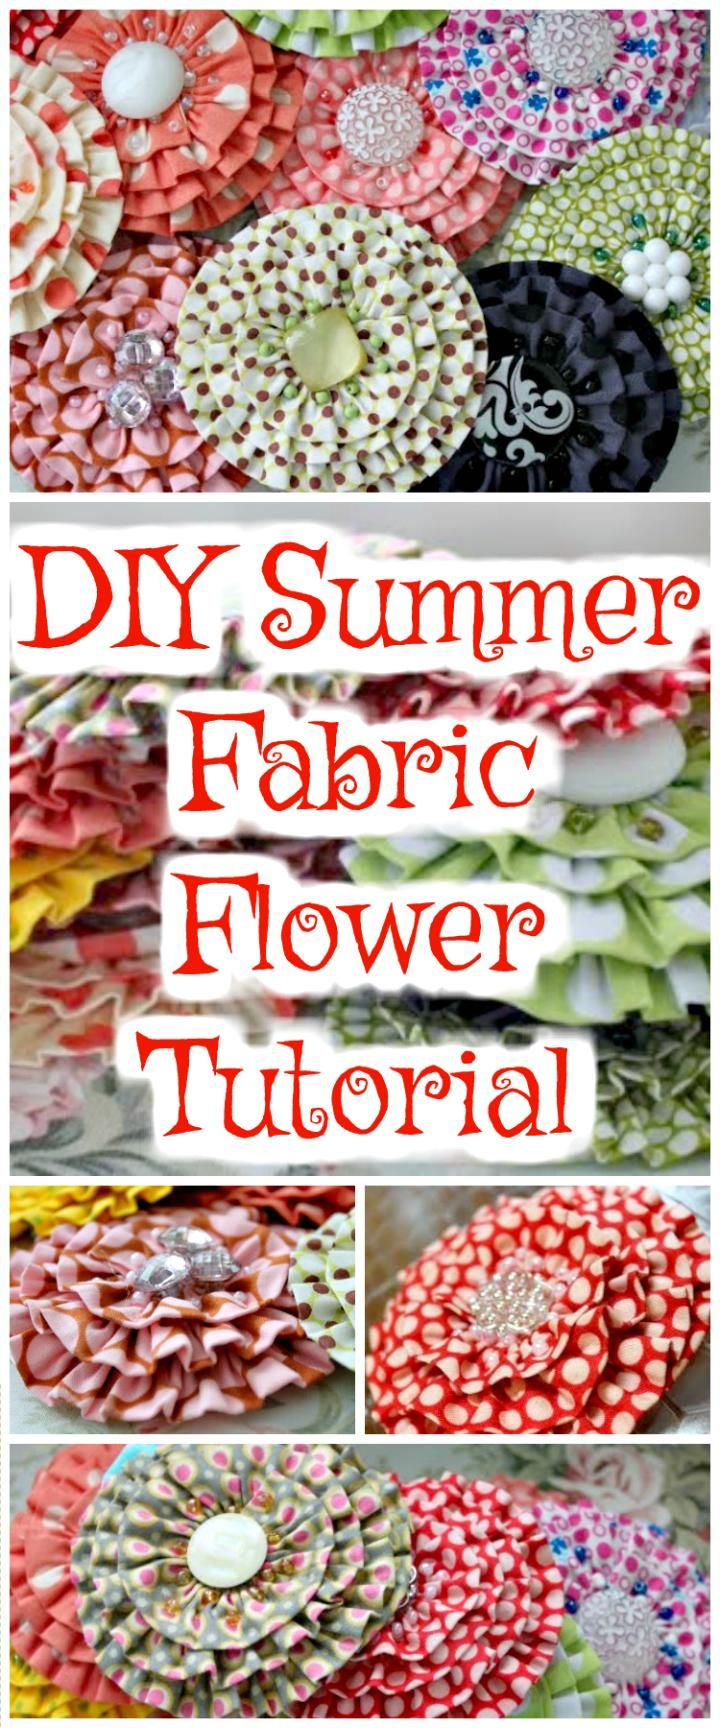 DIY Summer Fabric Flower Tutorial - 50 Easy Fabric Flowers Tutorial - Make Your Own Fabric Flowers - Page 3 of 10 - DIY & Crafts